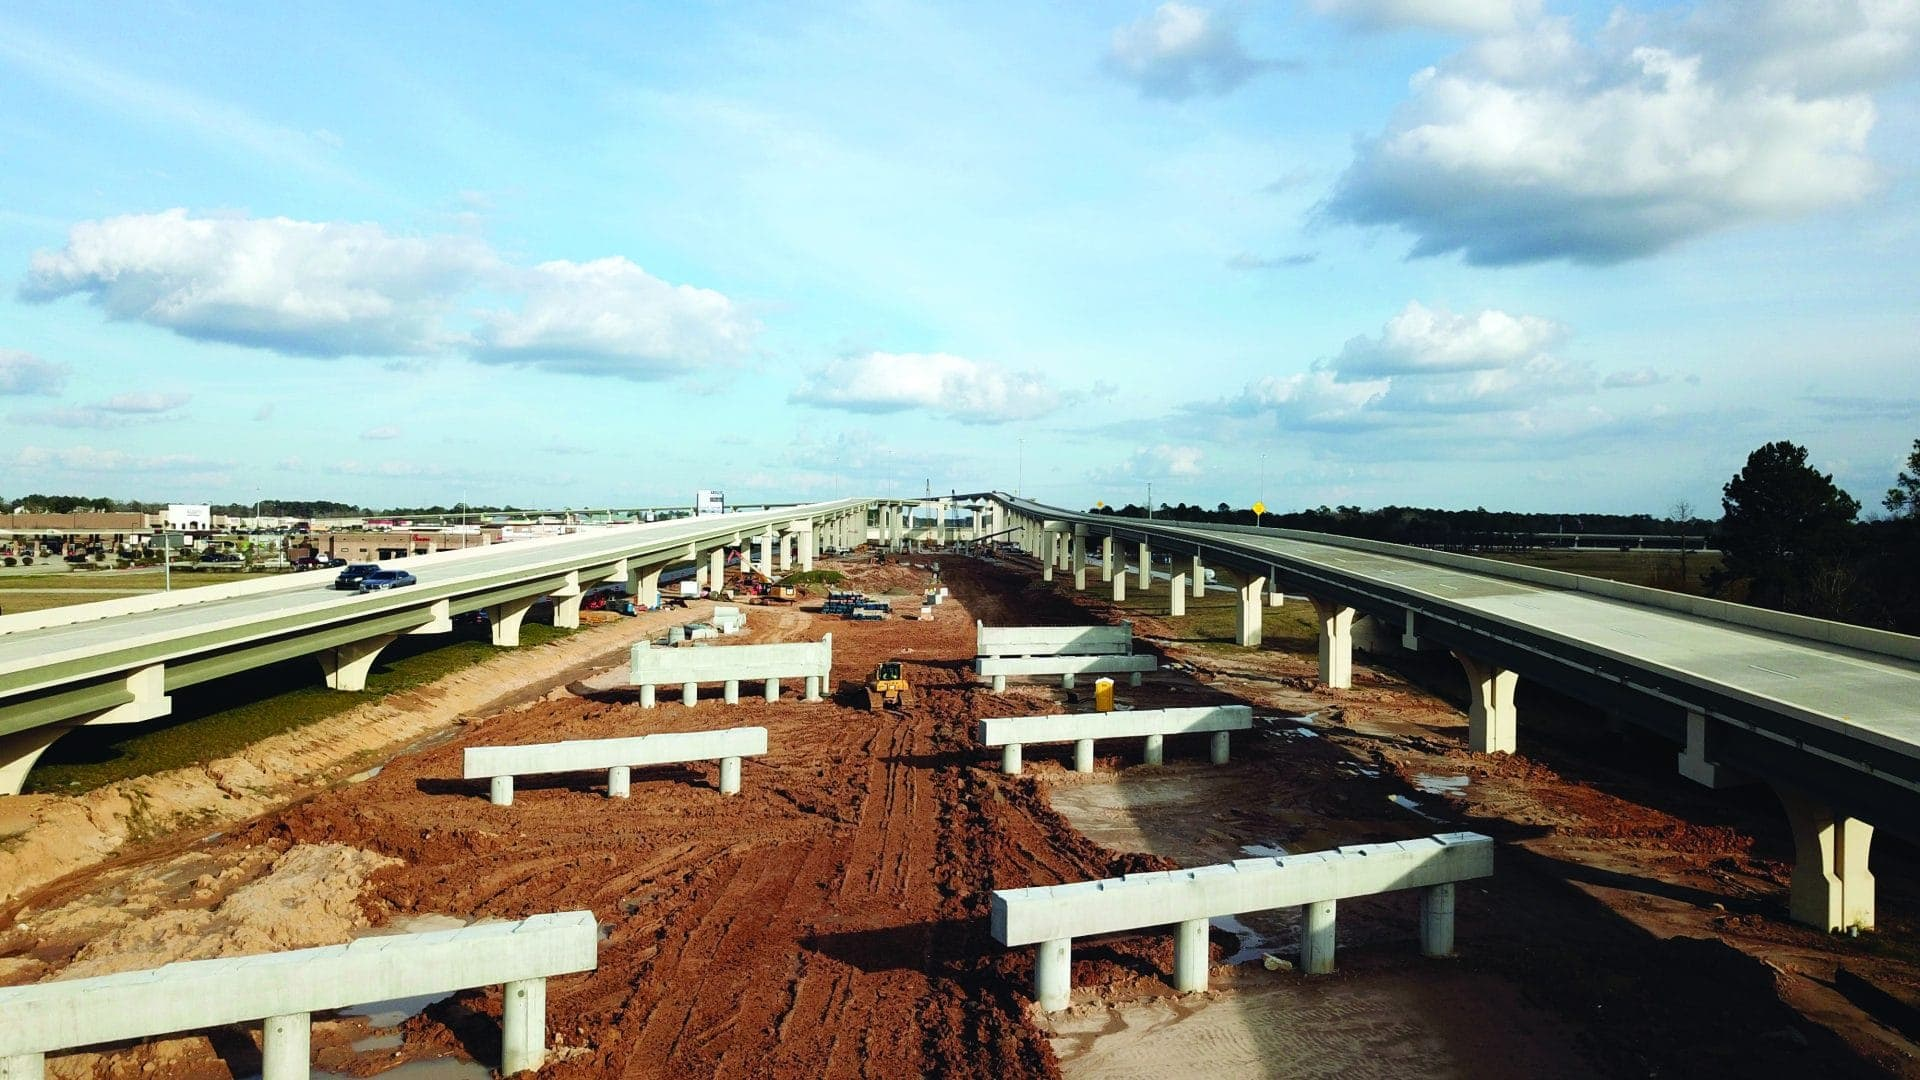 GPI, a joint venture composed of Ferrovial Agroman US, Webber and Granite Constructions on the SH 99 Grand Parkway Project